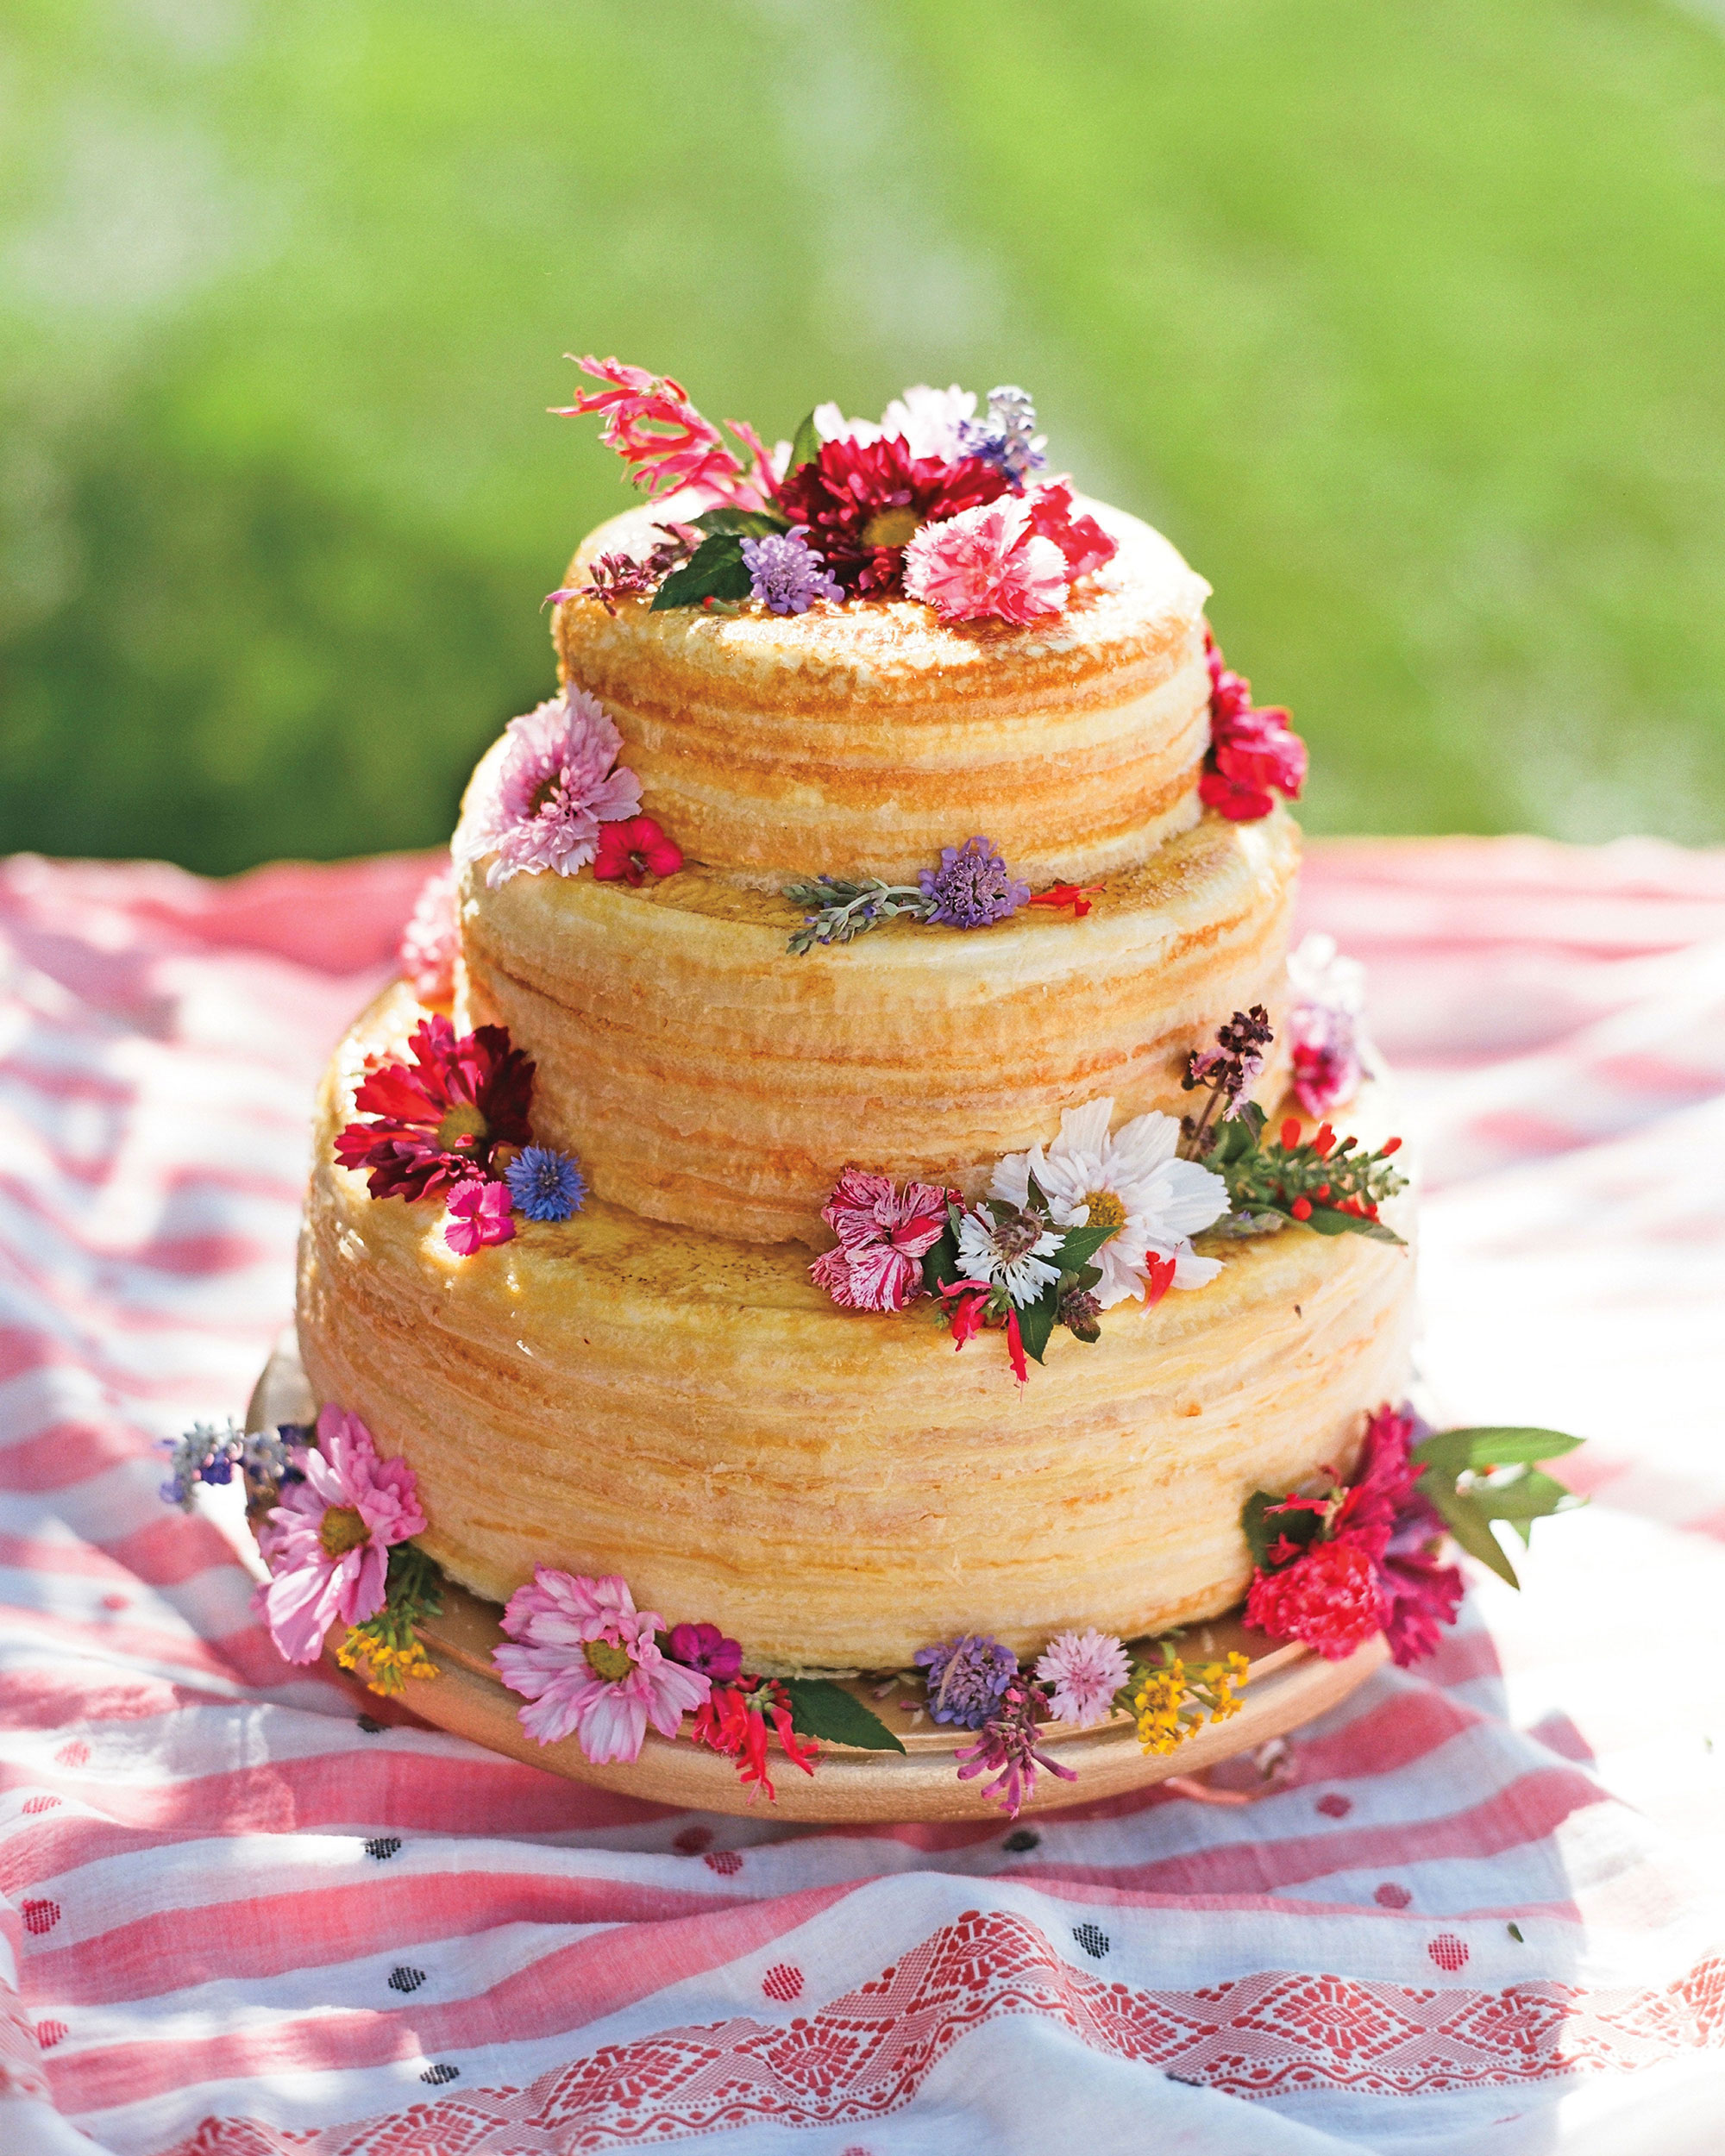 mfiona-peter-wedding-vermont-naked-floral-cake-9645.15.2015.47-d112512.jpg